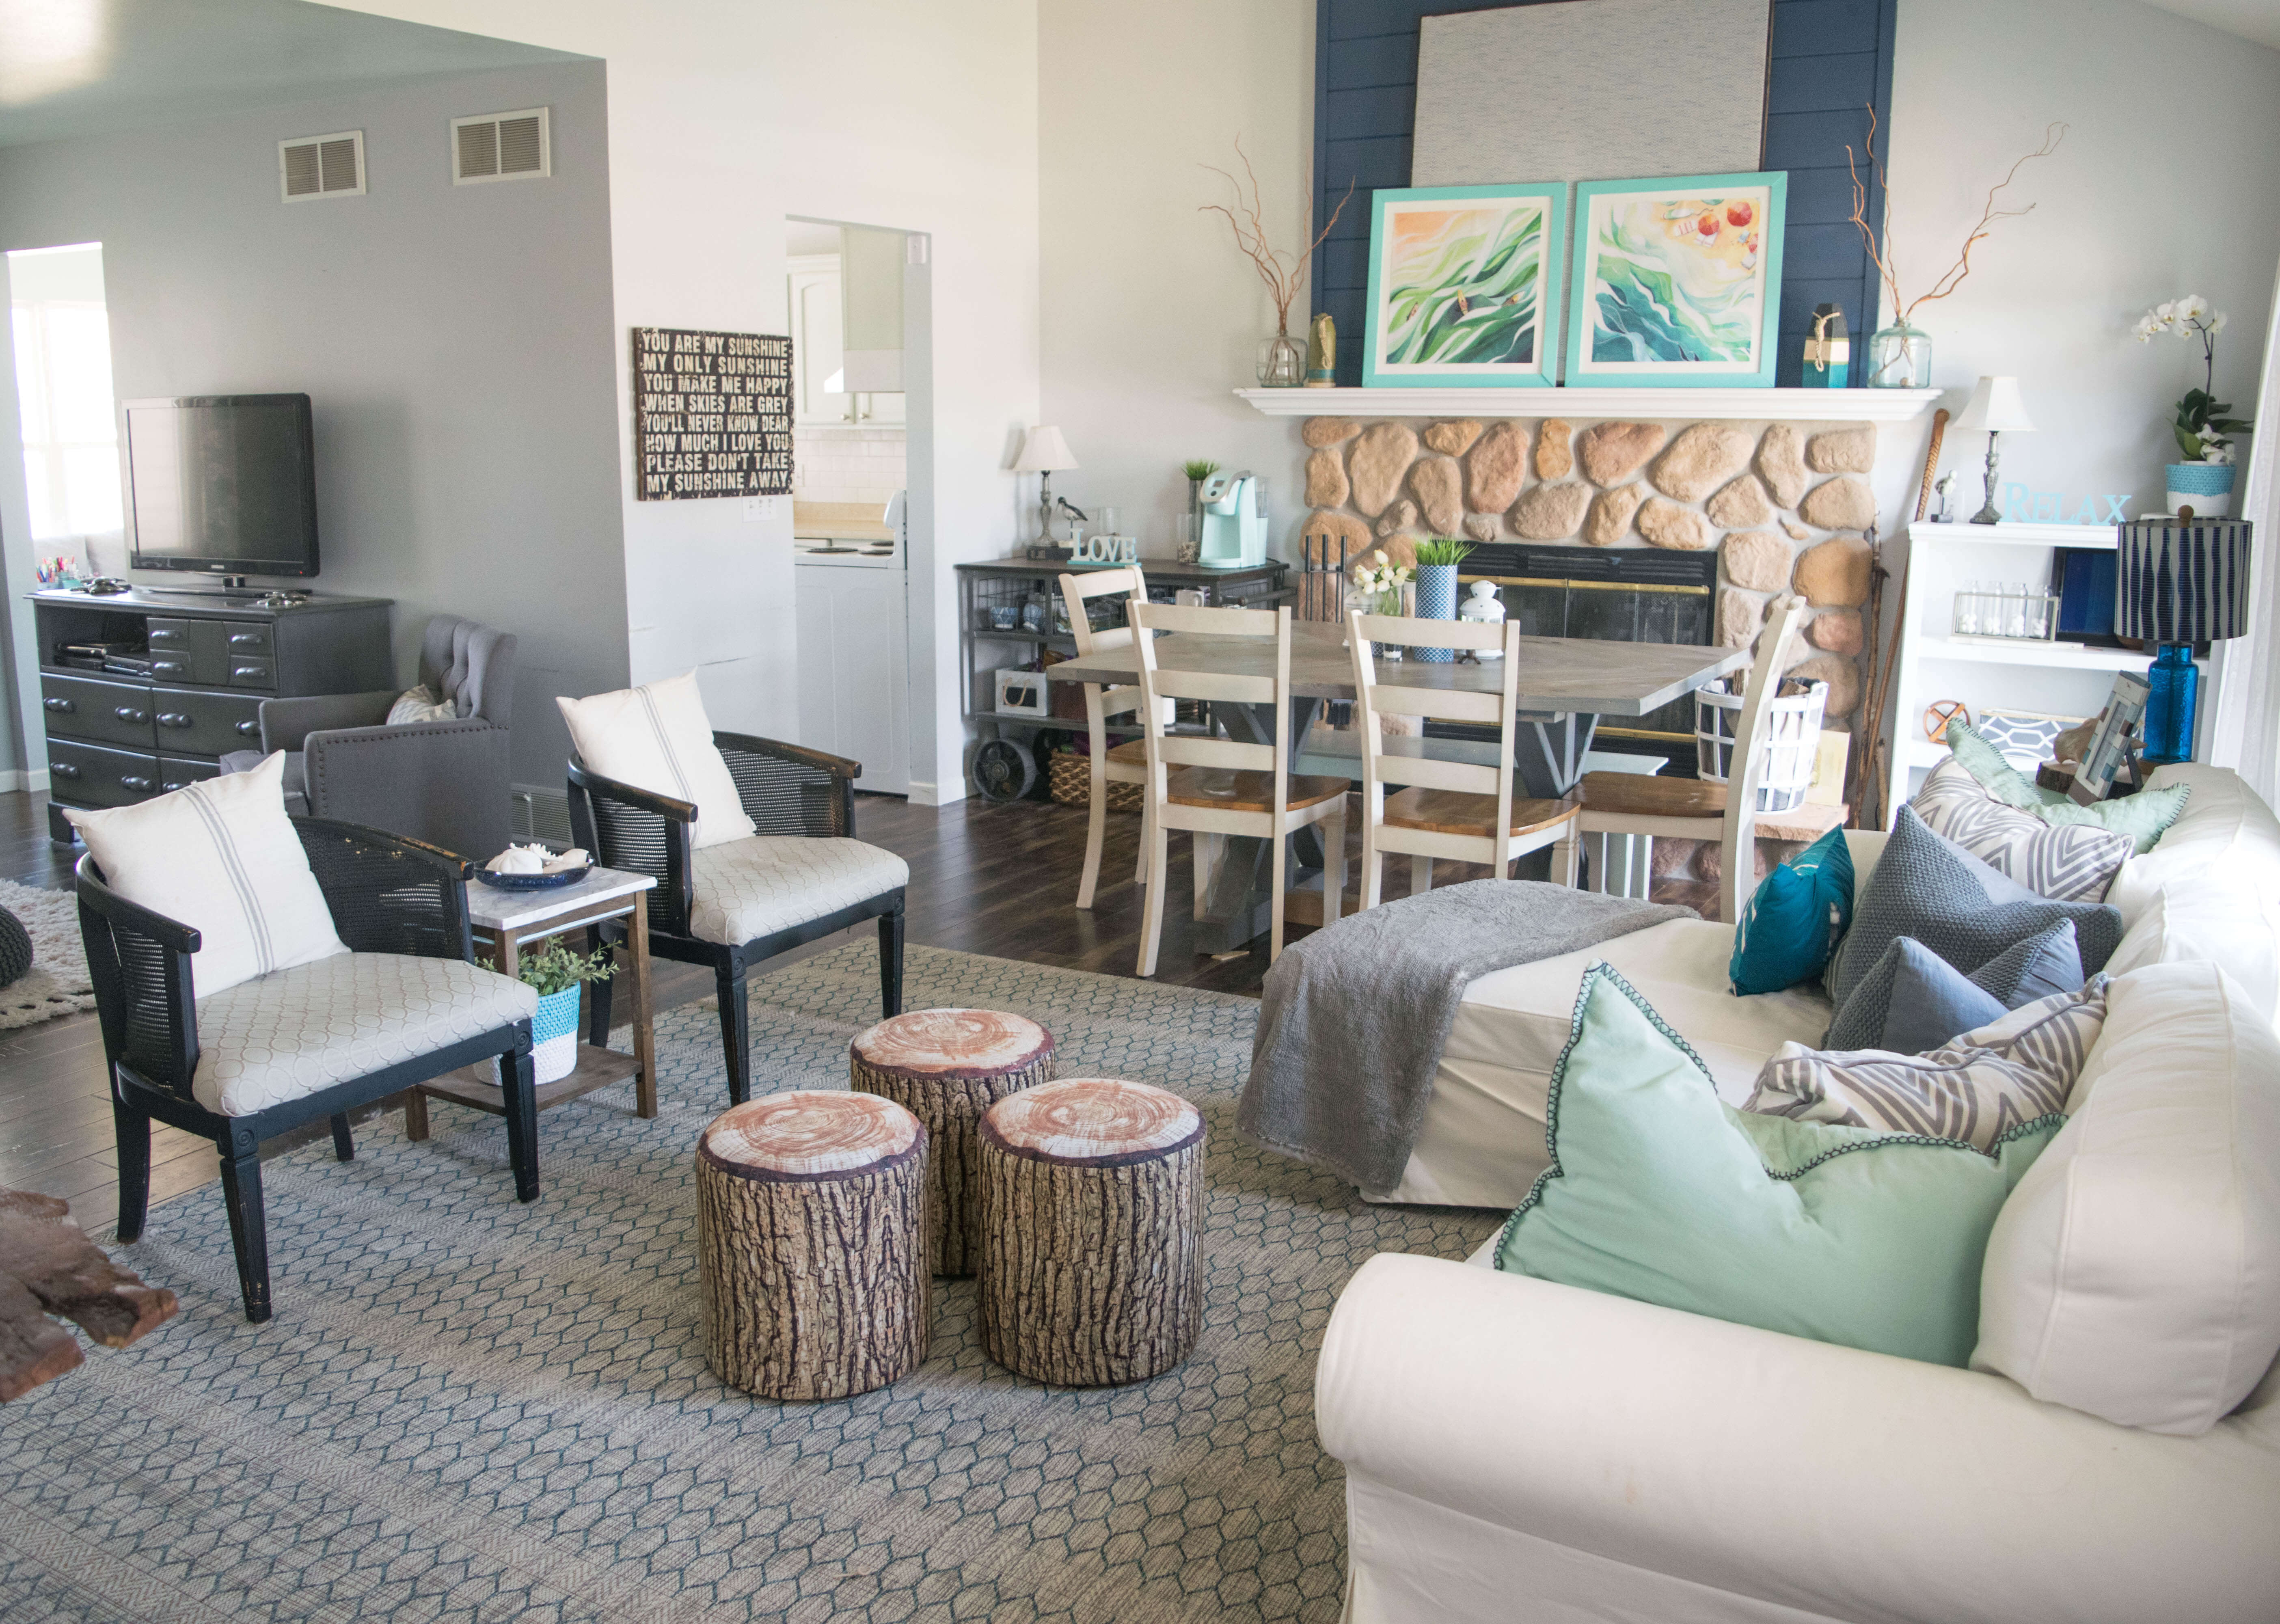 home tour - sharing the colorful, low cost & casual style